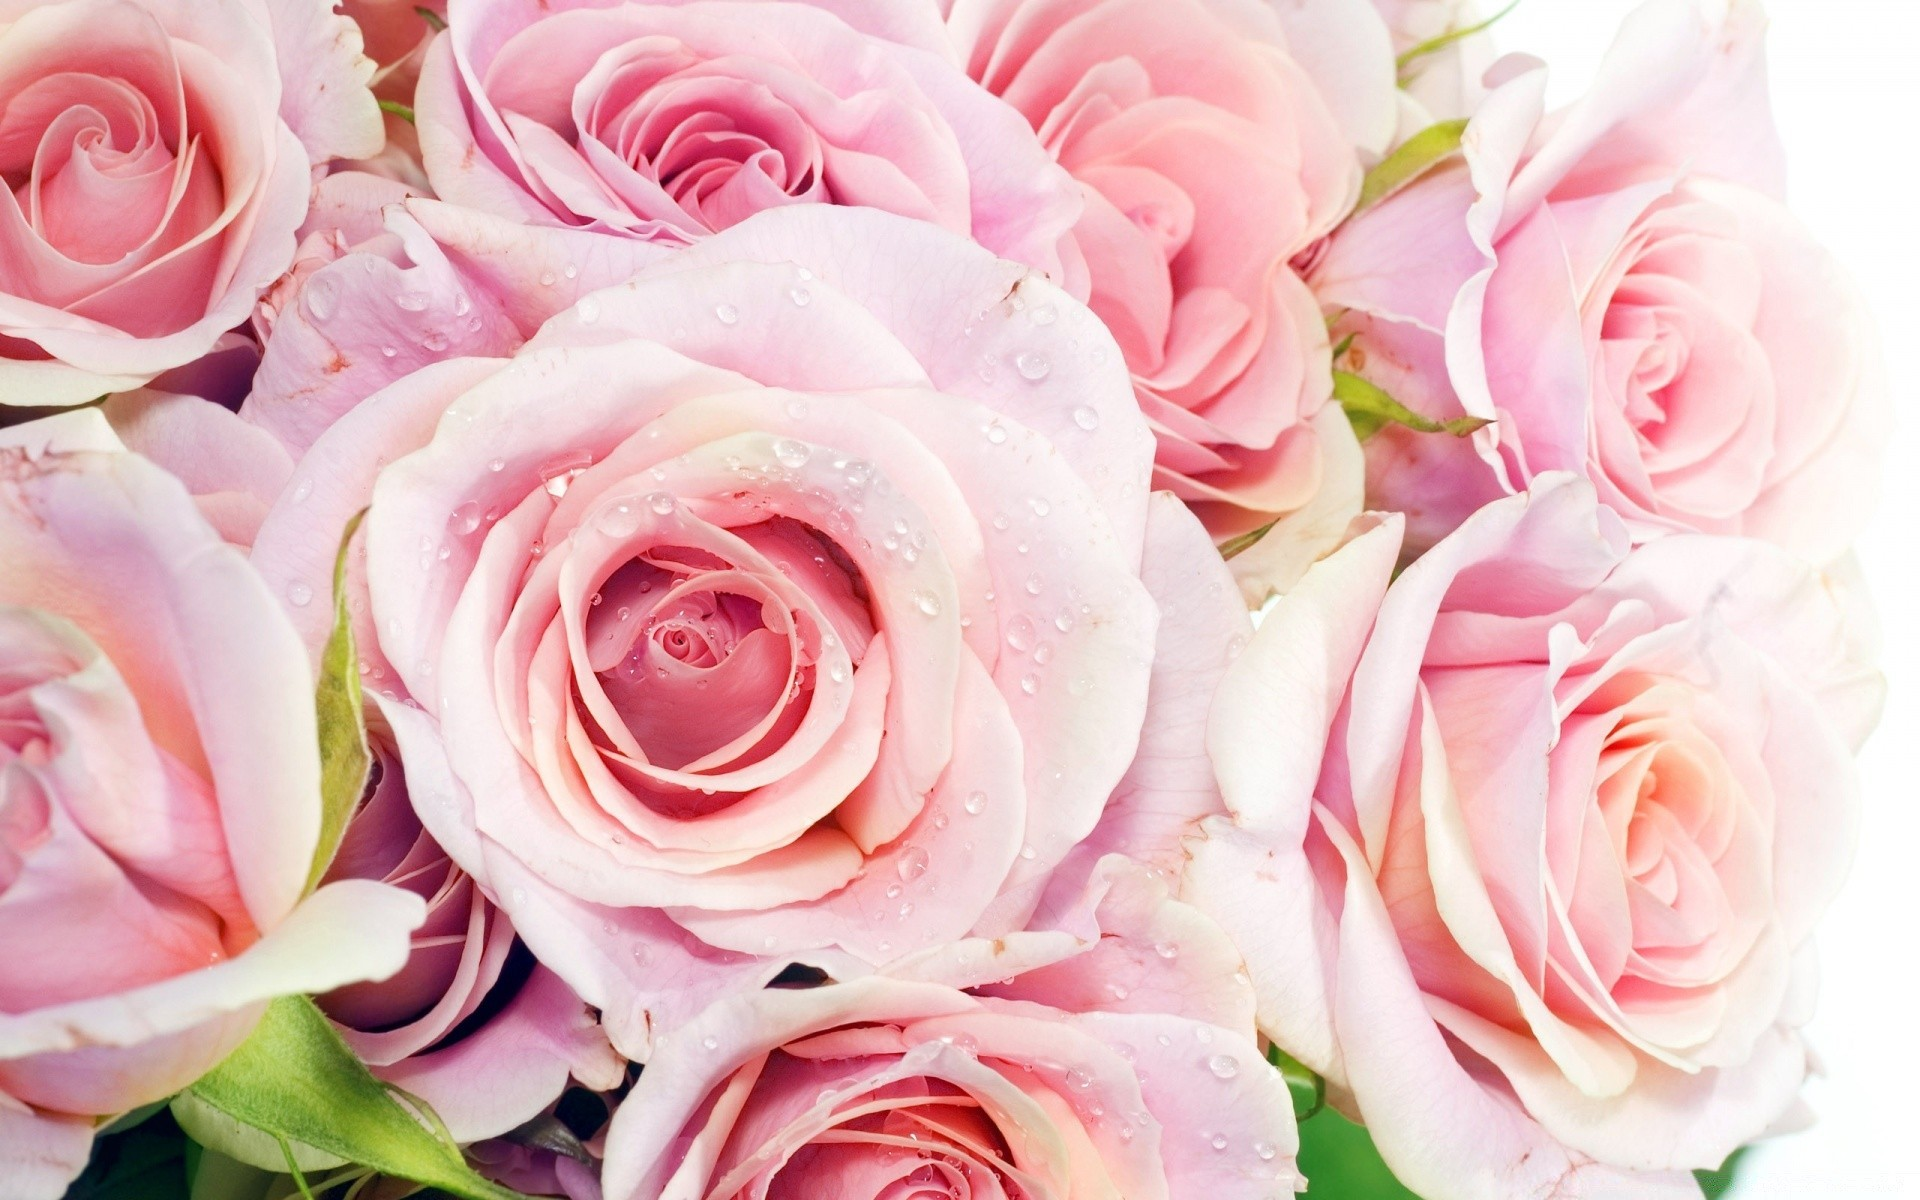 Pink Roses IPhone Wallpapers For Free